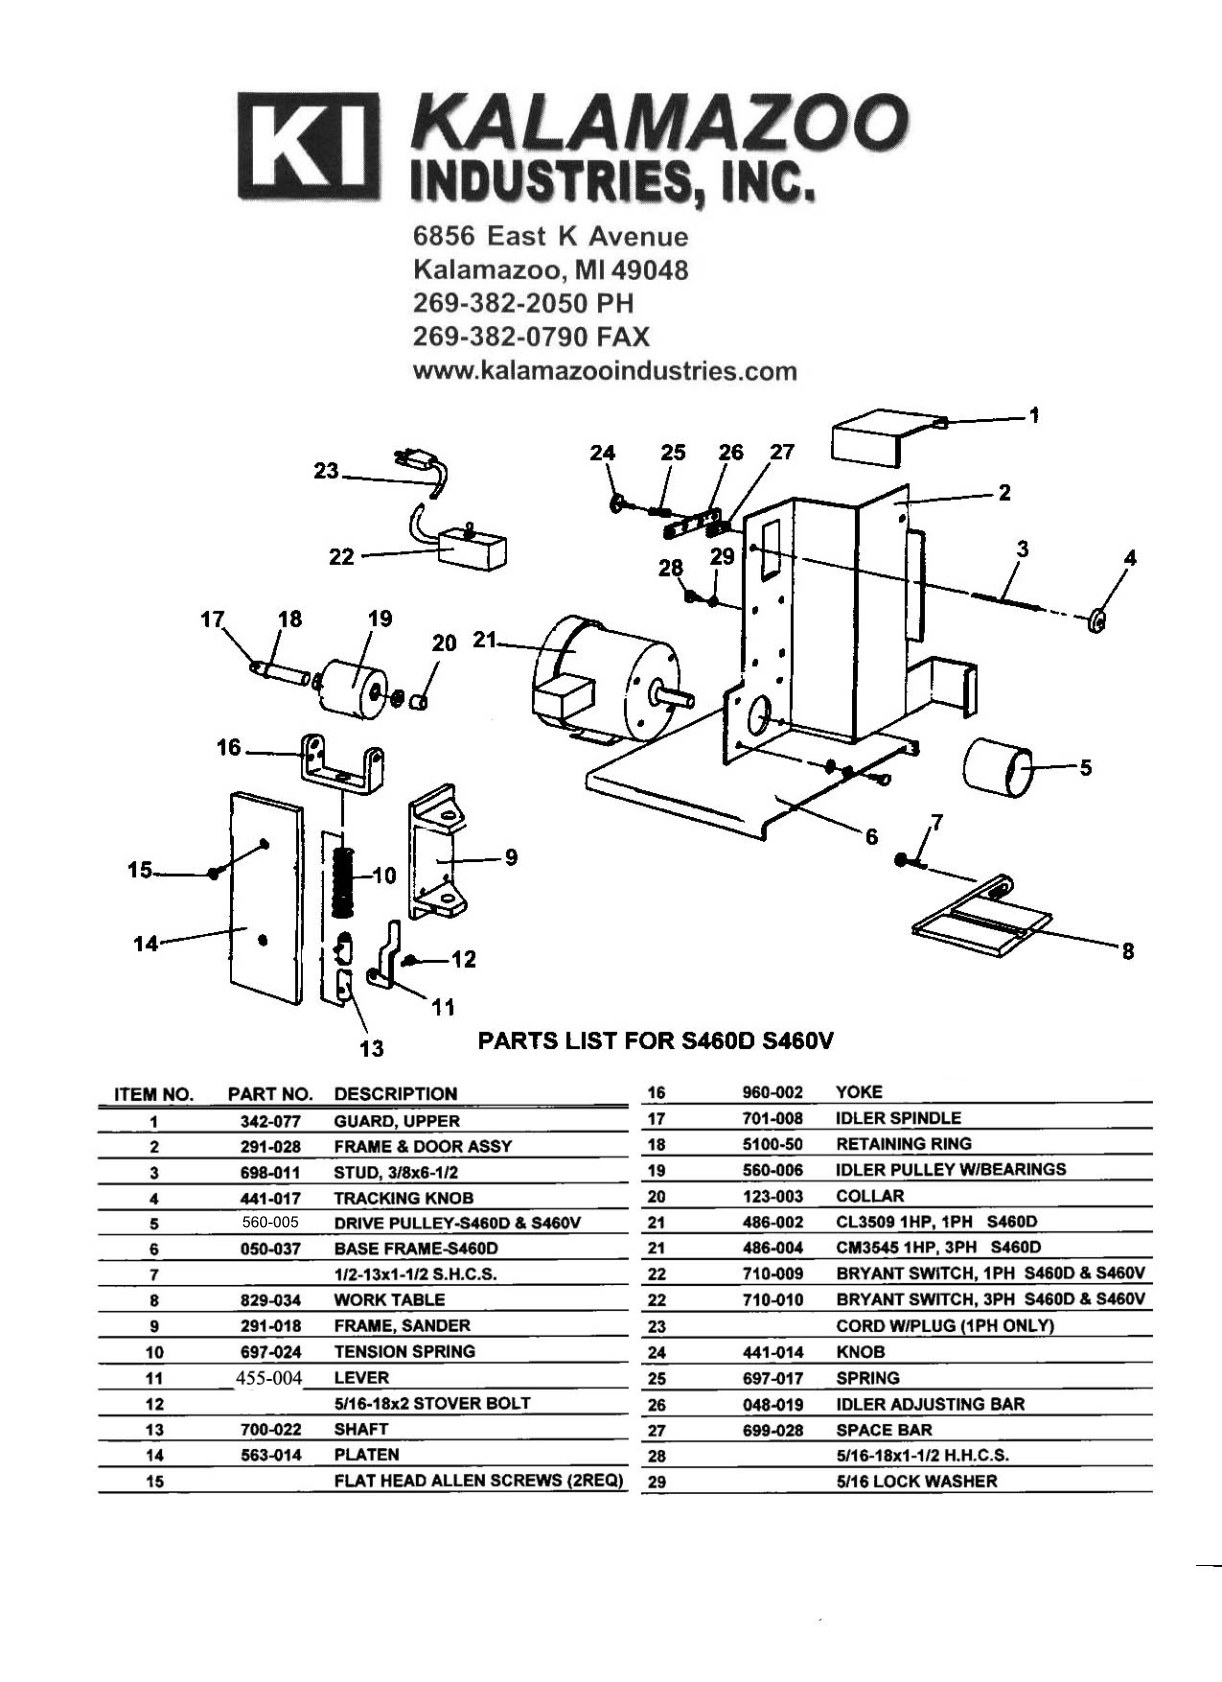 Replacement S460 4 x 60 inch belt sander replacement parts list, 4 x 60 inch, belt sanders, belt sanders, replacement parts, S460V 4 x 60 inch Dry Industrial Belt Sander With Vacuum Base, Belt Sander , collector, industrial, vacuum